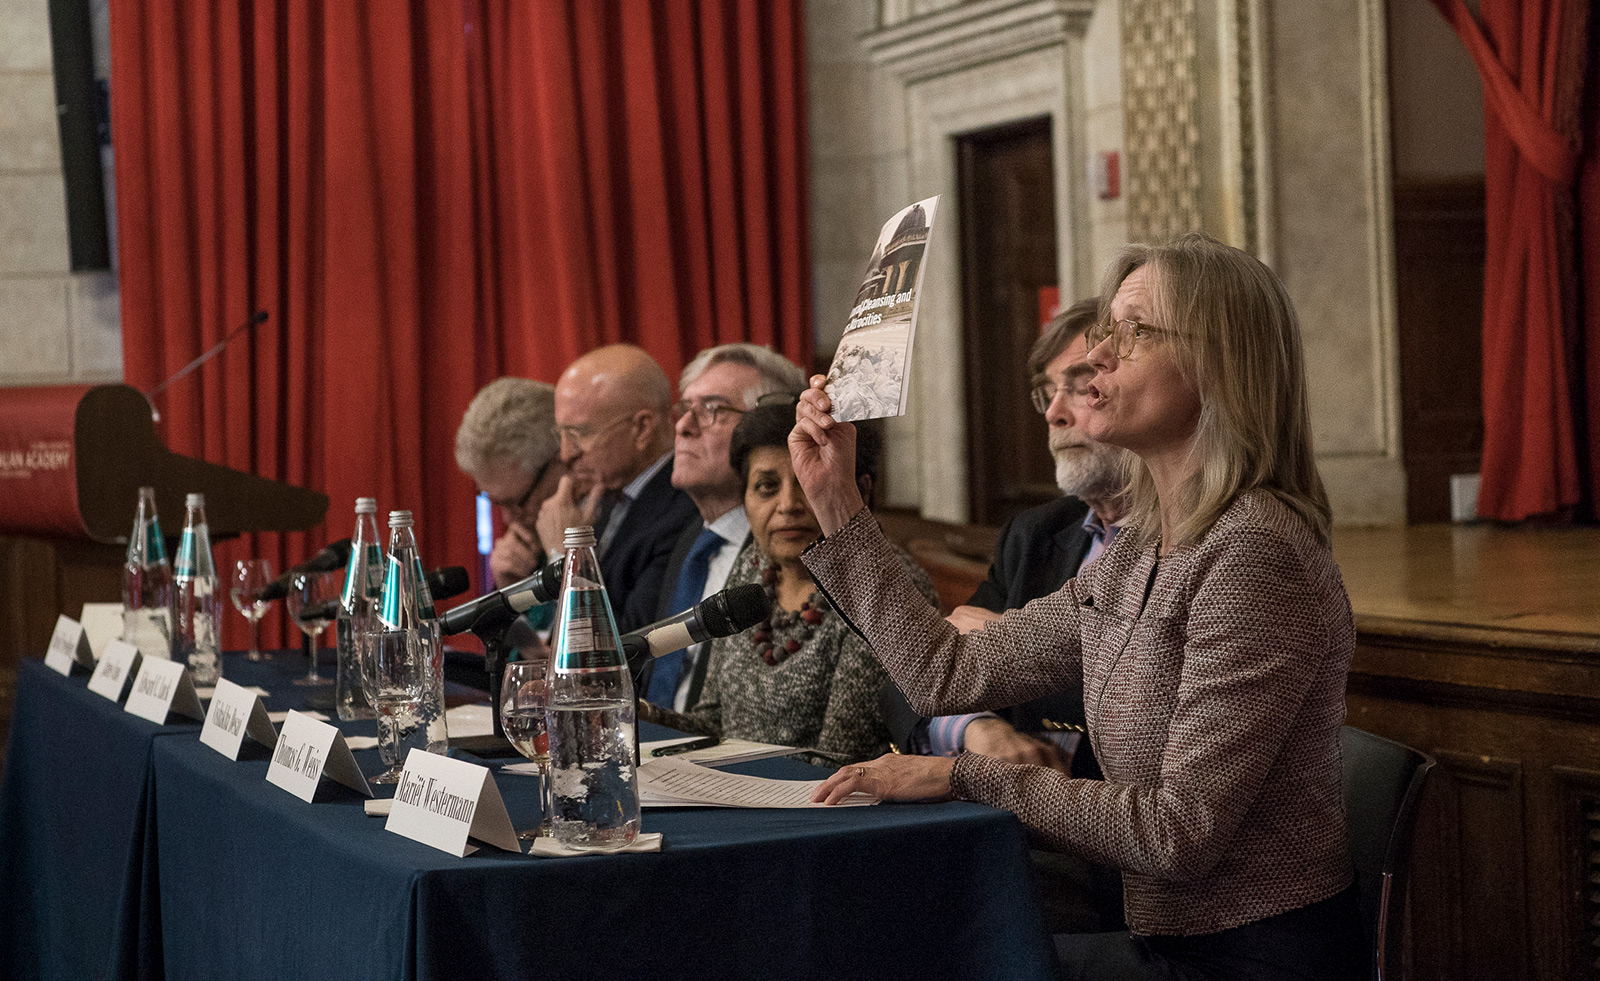 A speaker at a panel discussion makes a point about the need to protect cultural heritage, holding aloft a report on the subject